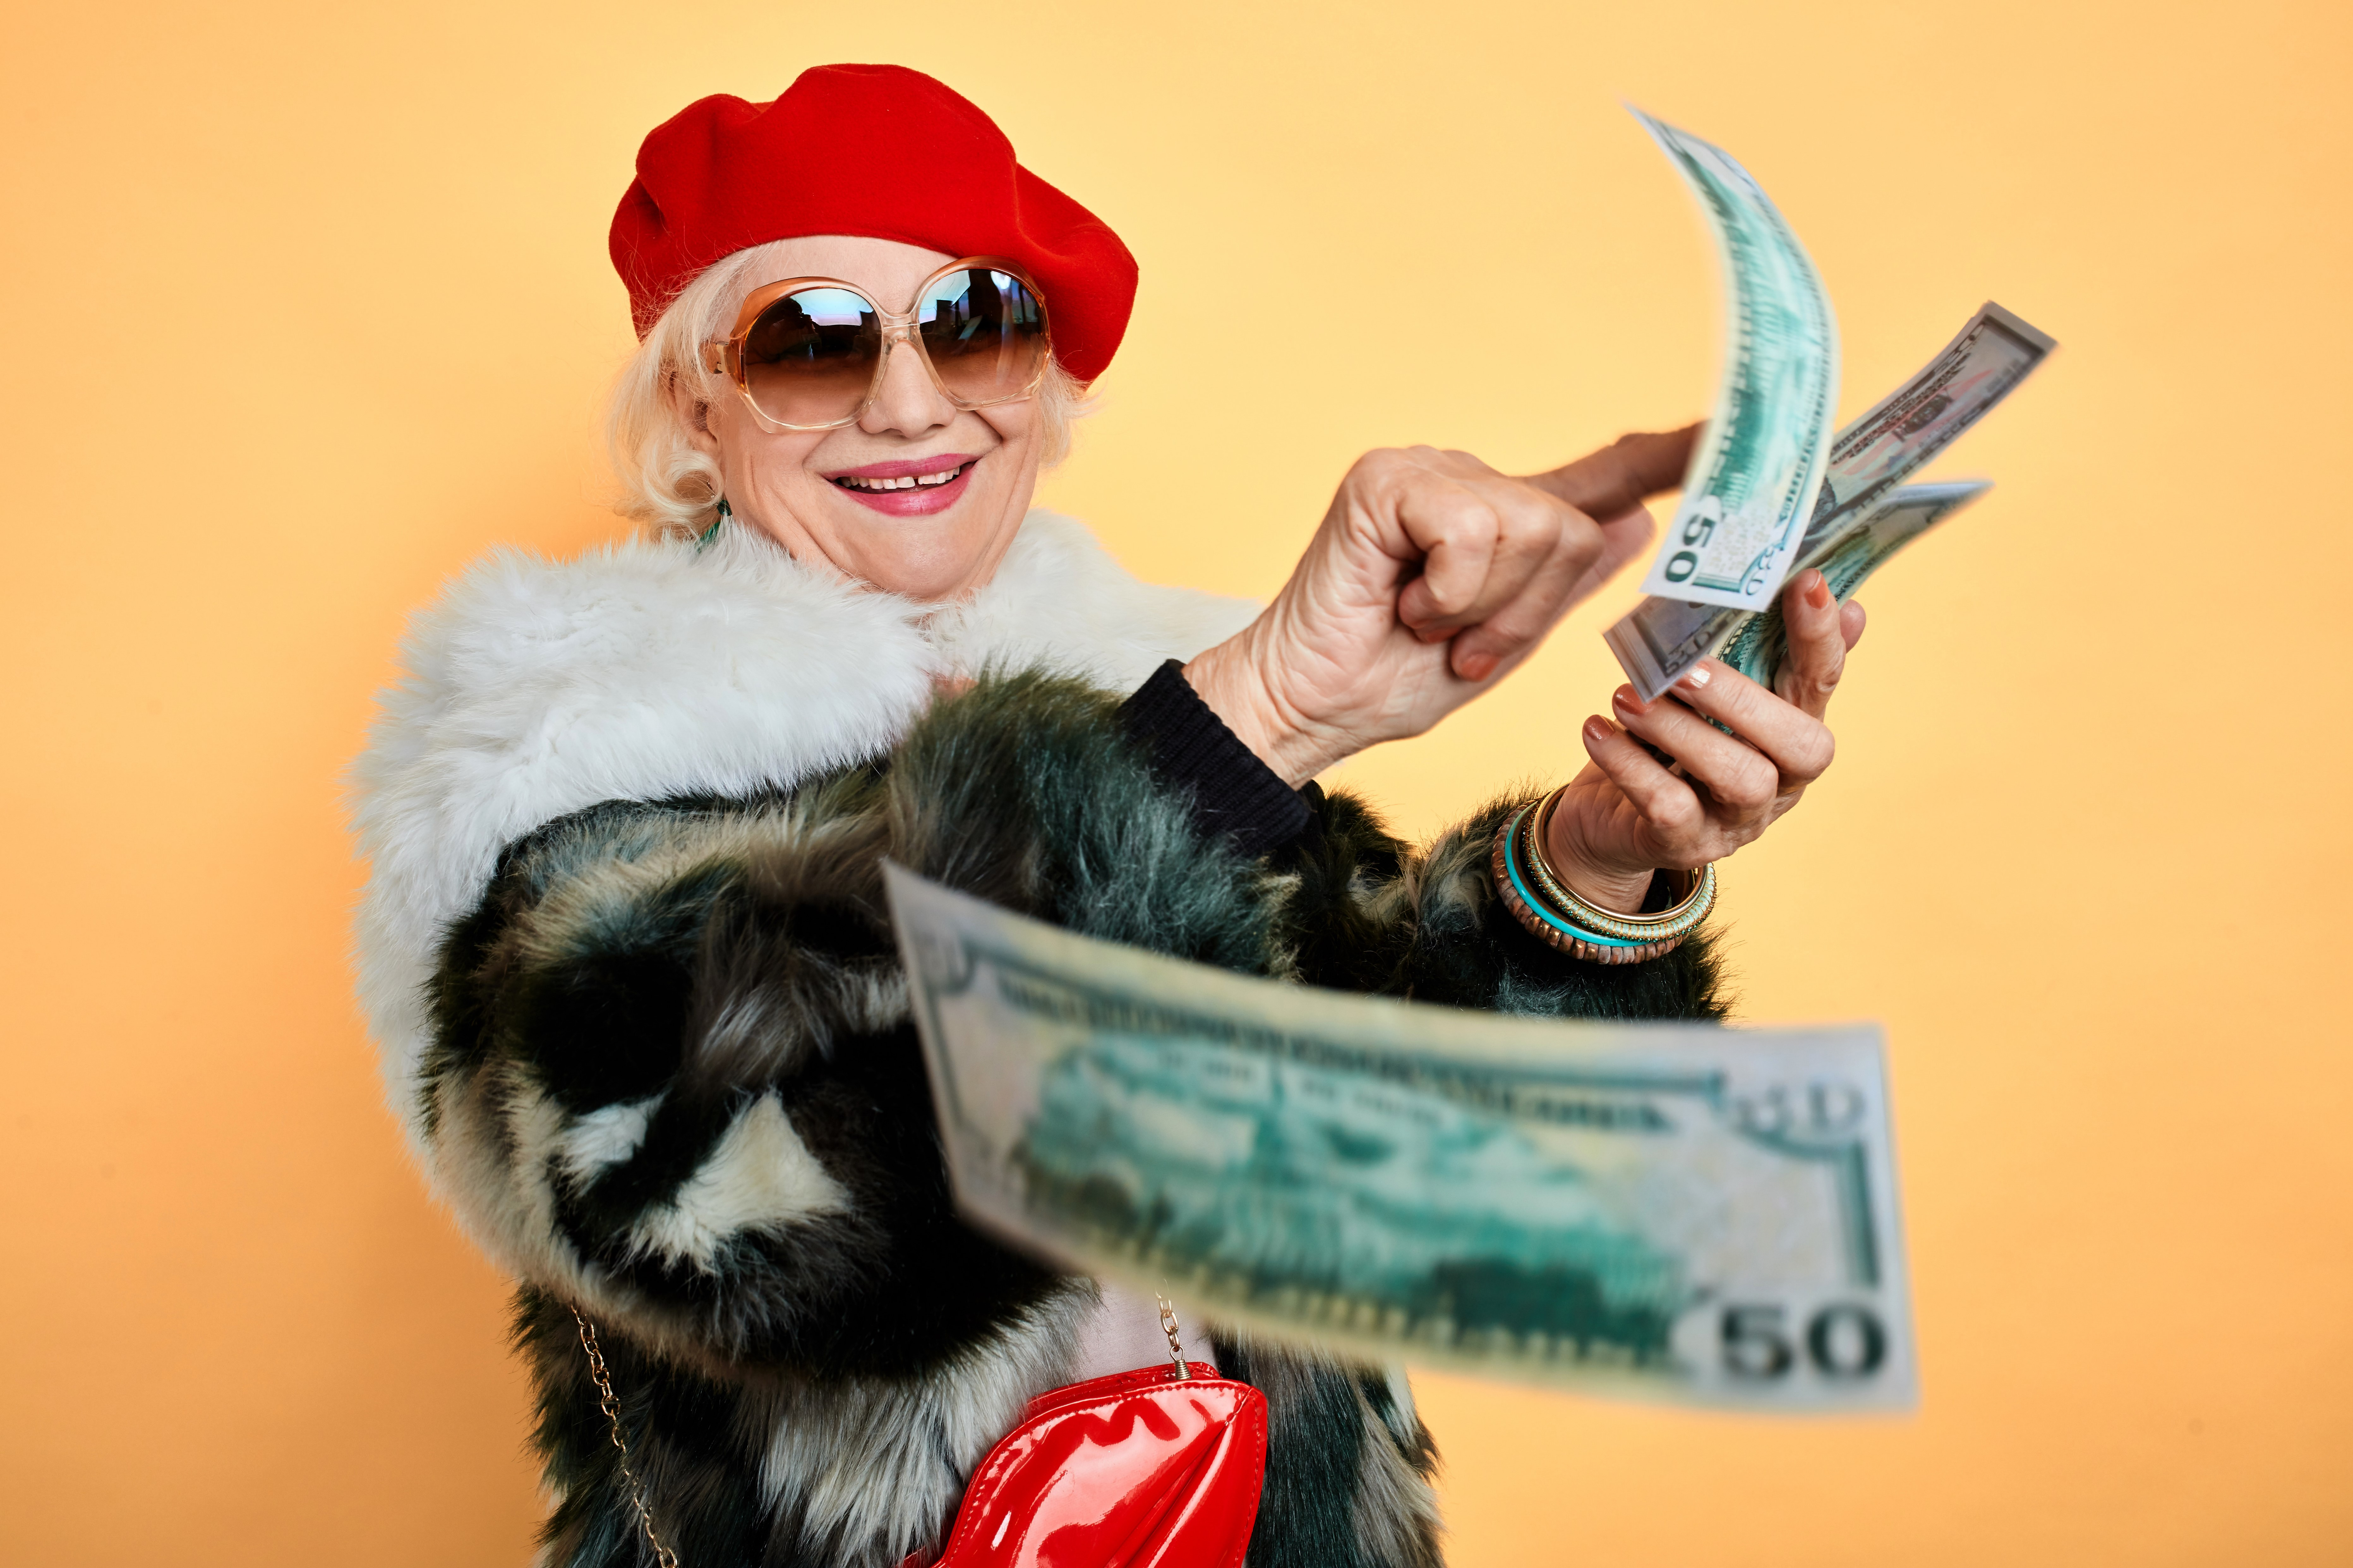 Woman%20smiling%20holding%20cash.jpg